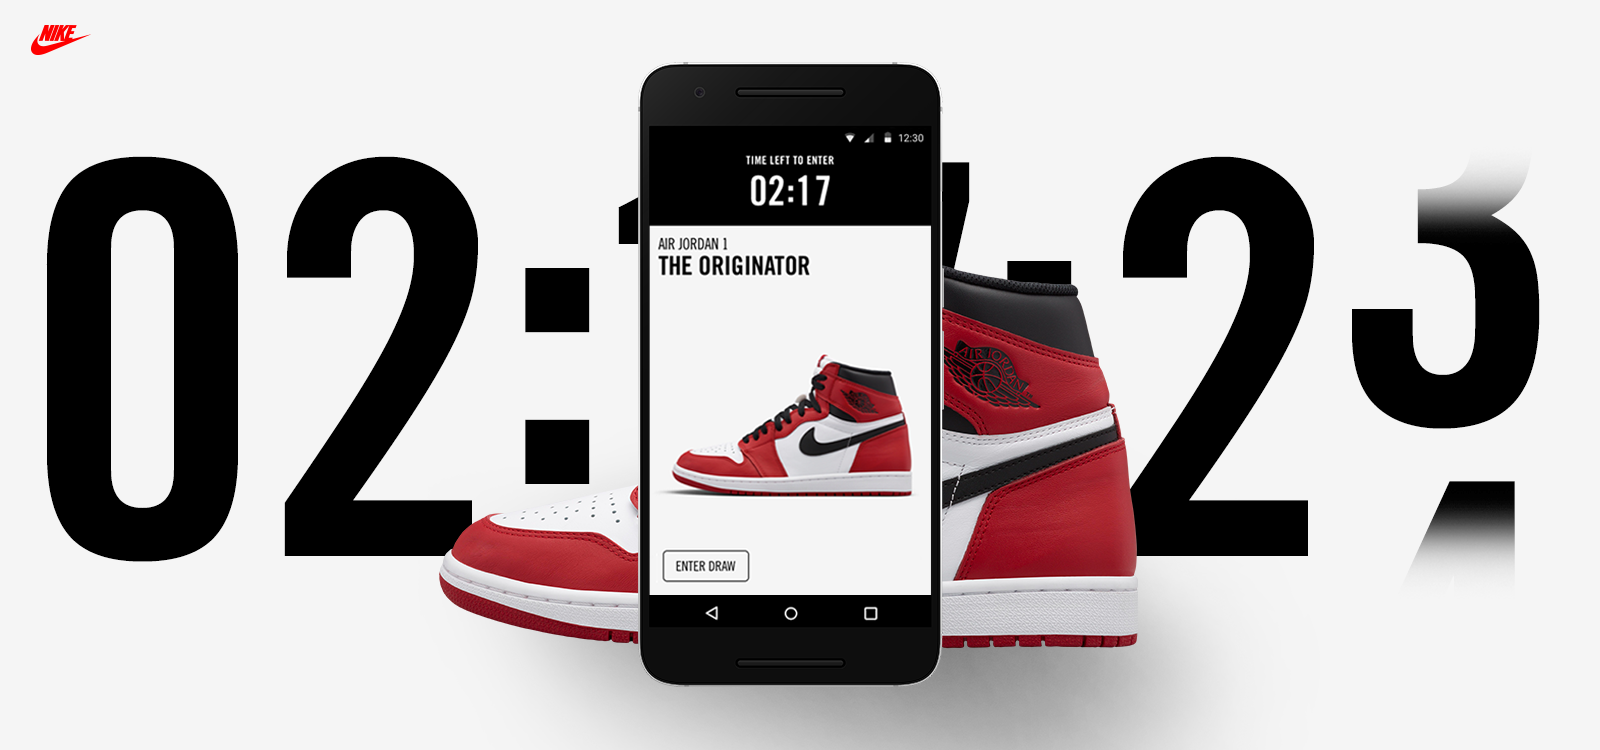 What Is the Difference between the Nike App and Snkrs App? | Nike Help